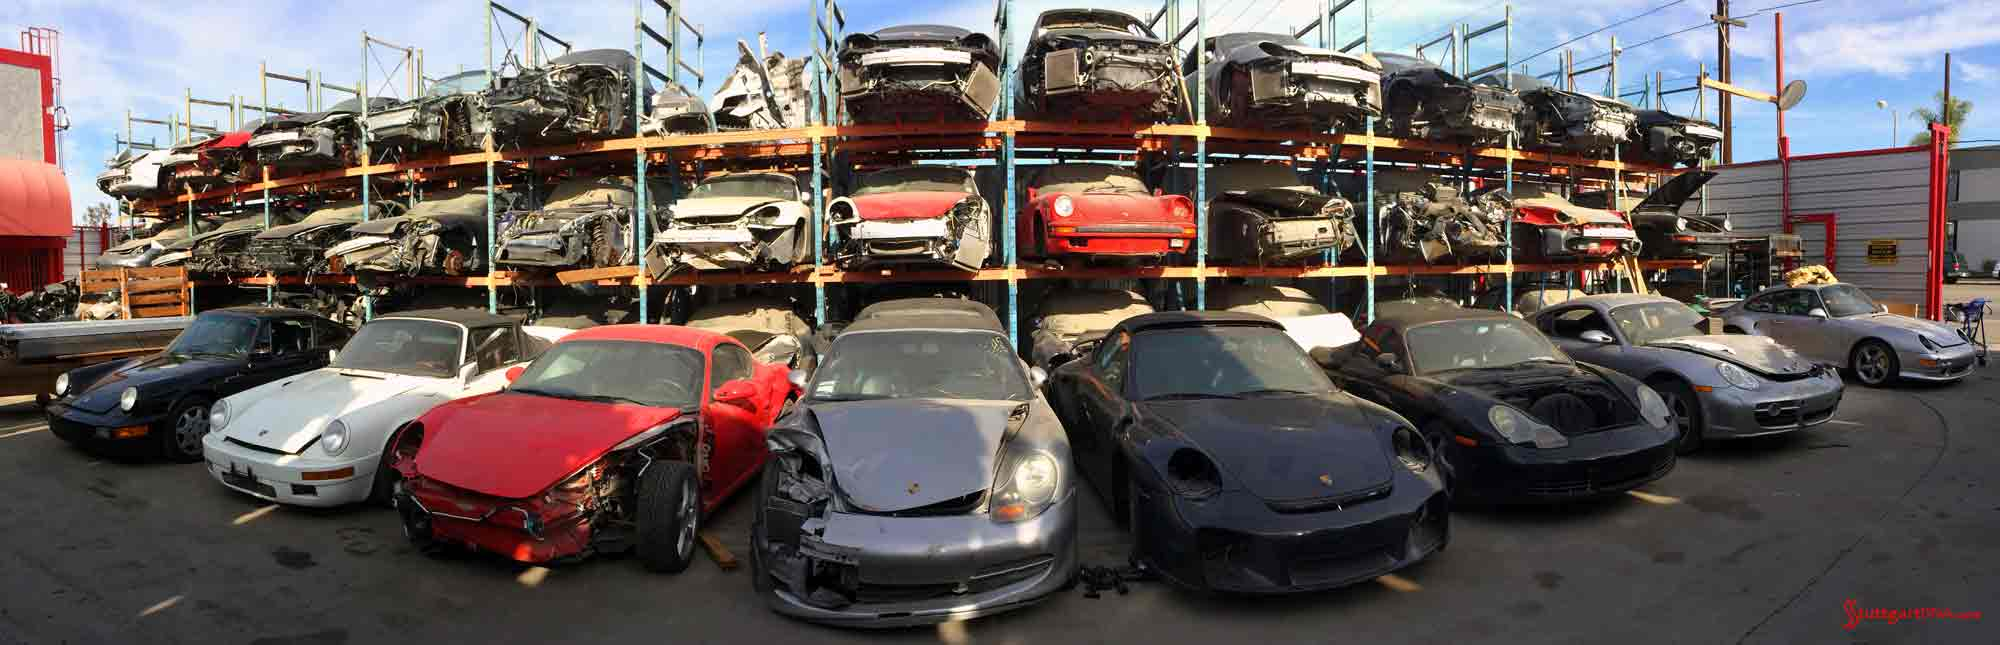 How to choose the best car insurance: LA Dismantler pano of 3 stacked levels of Porsche wrecks in the junkyard. Credit: Los Angeles Dismantler